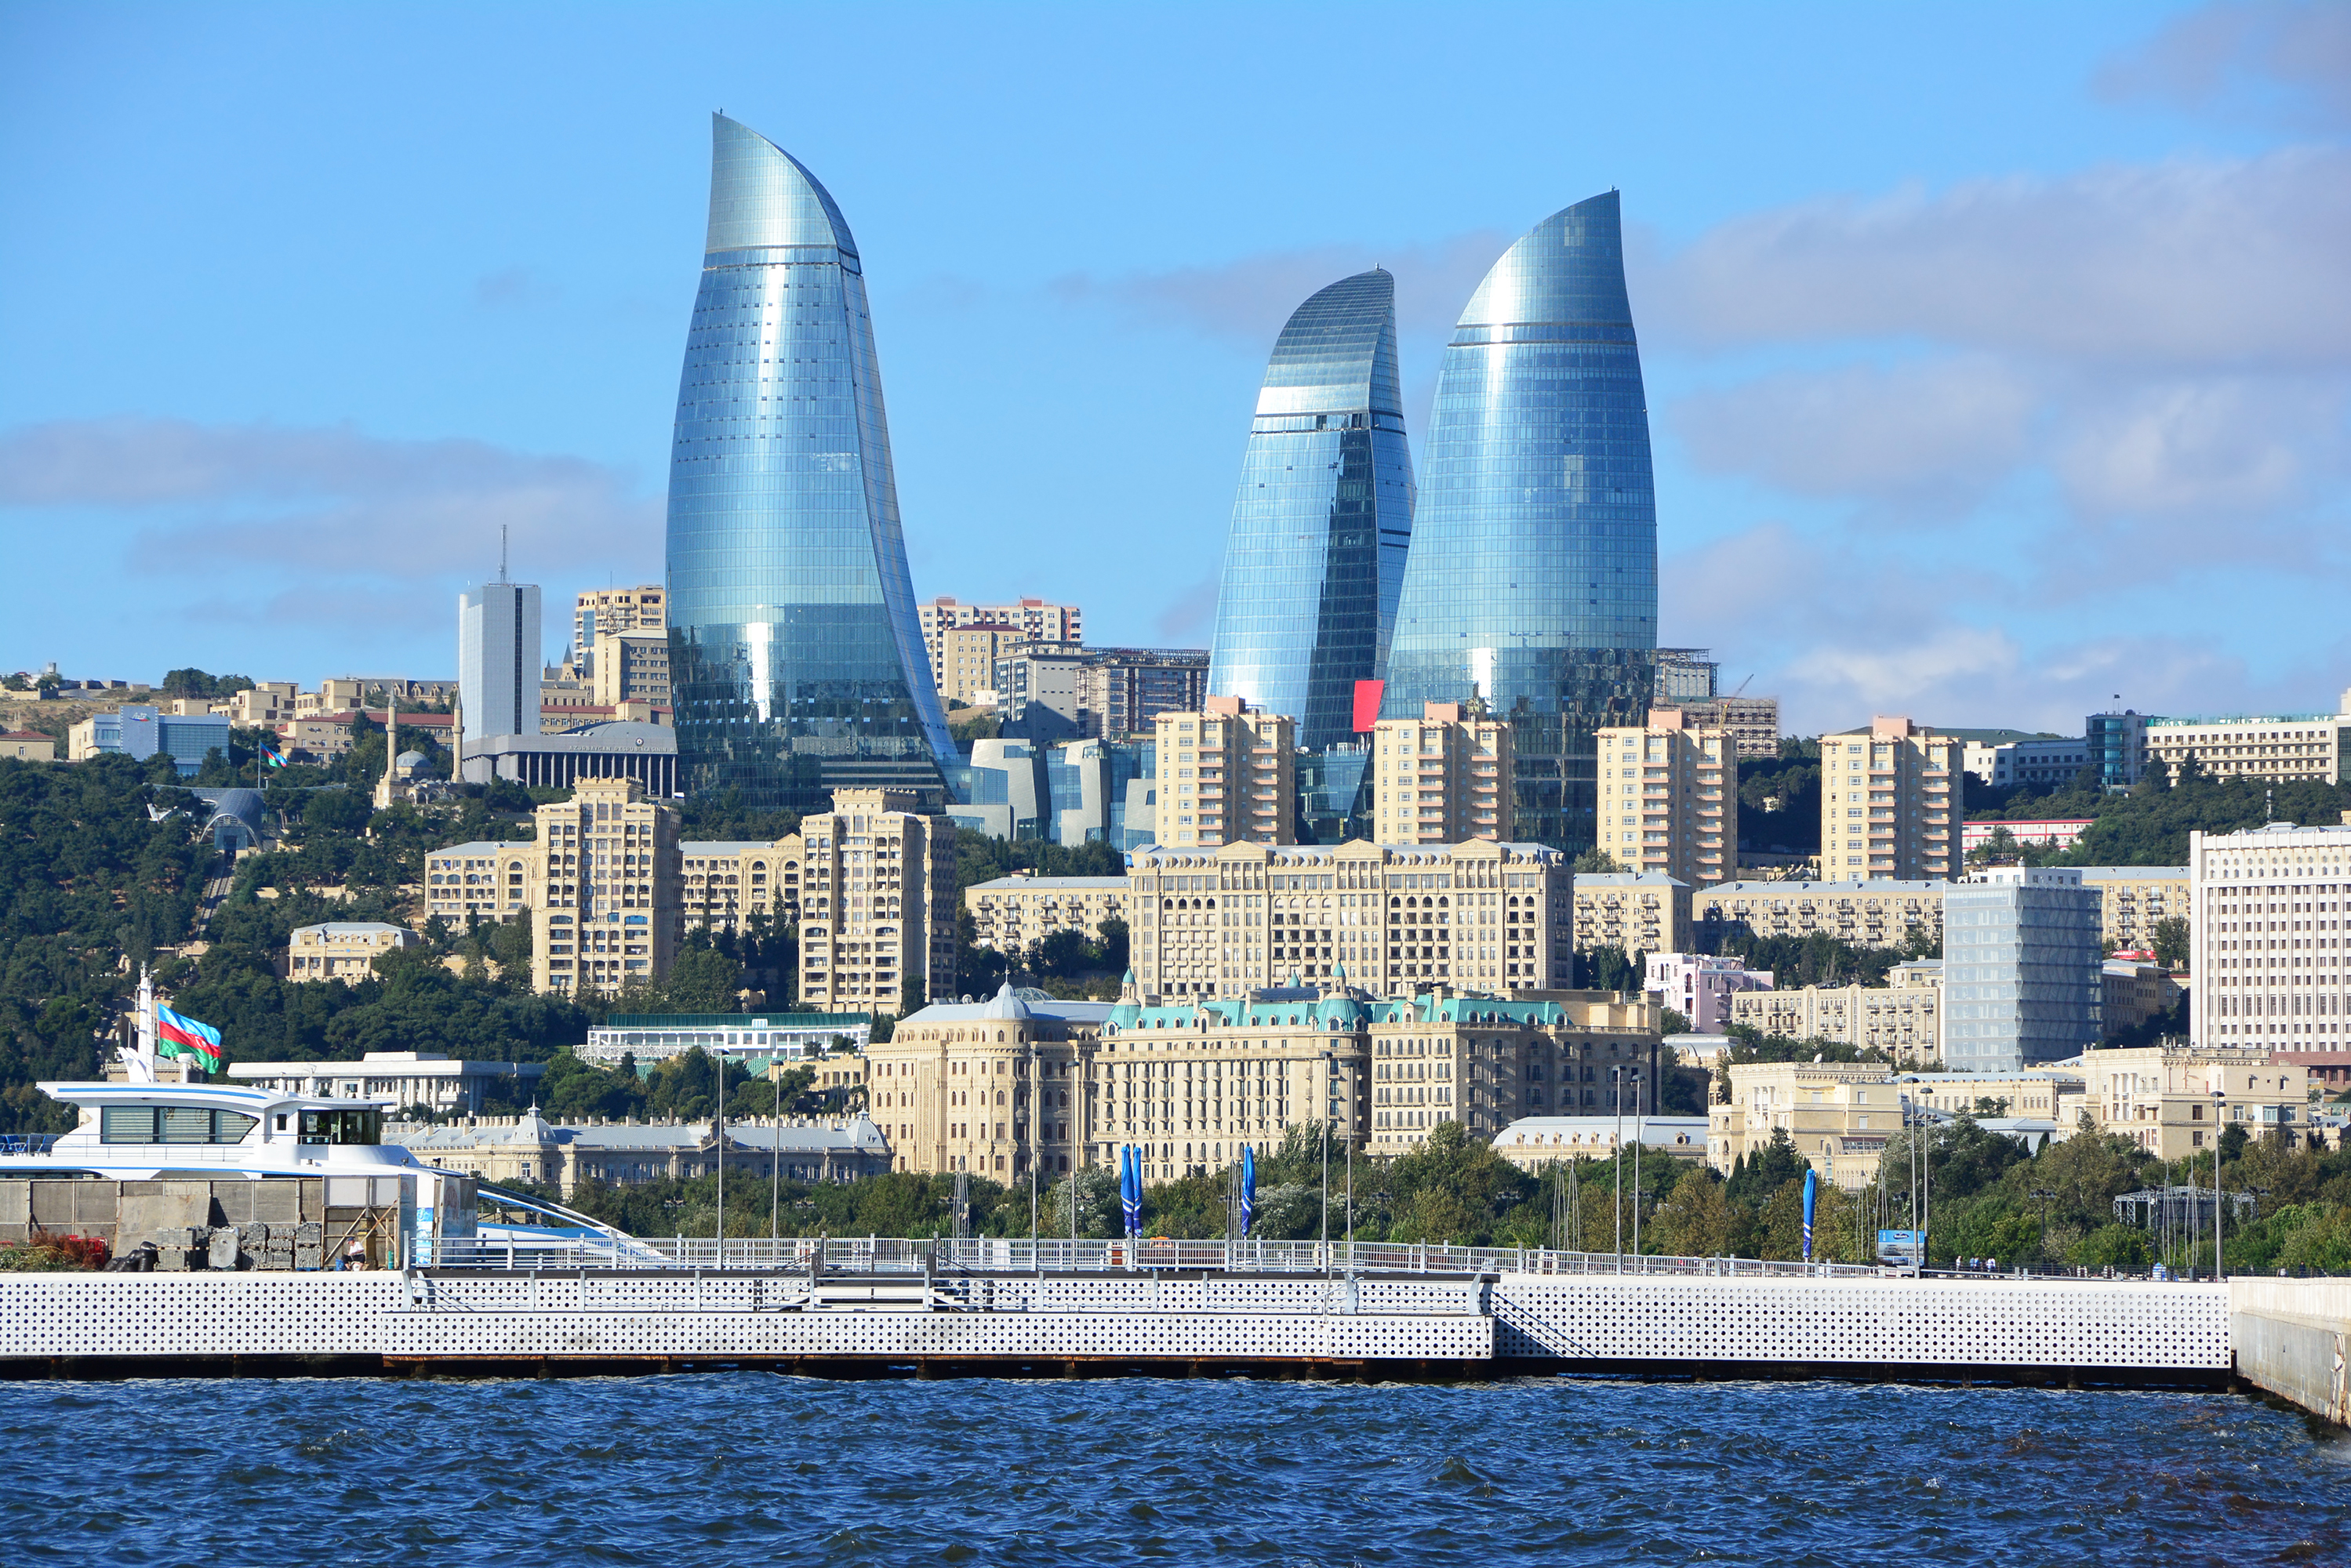 Find Hotels Near Fairmont Baku Flame Towers Baku Azerbaijan Hotels Downtown Hotels In Baku Hotel Search By Hotel Travel Index Business Travel News